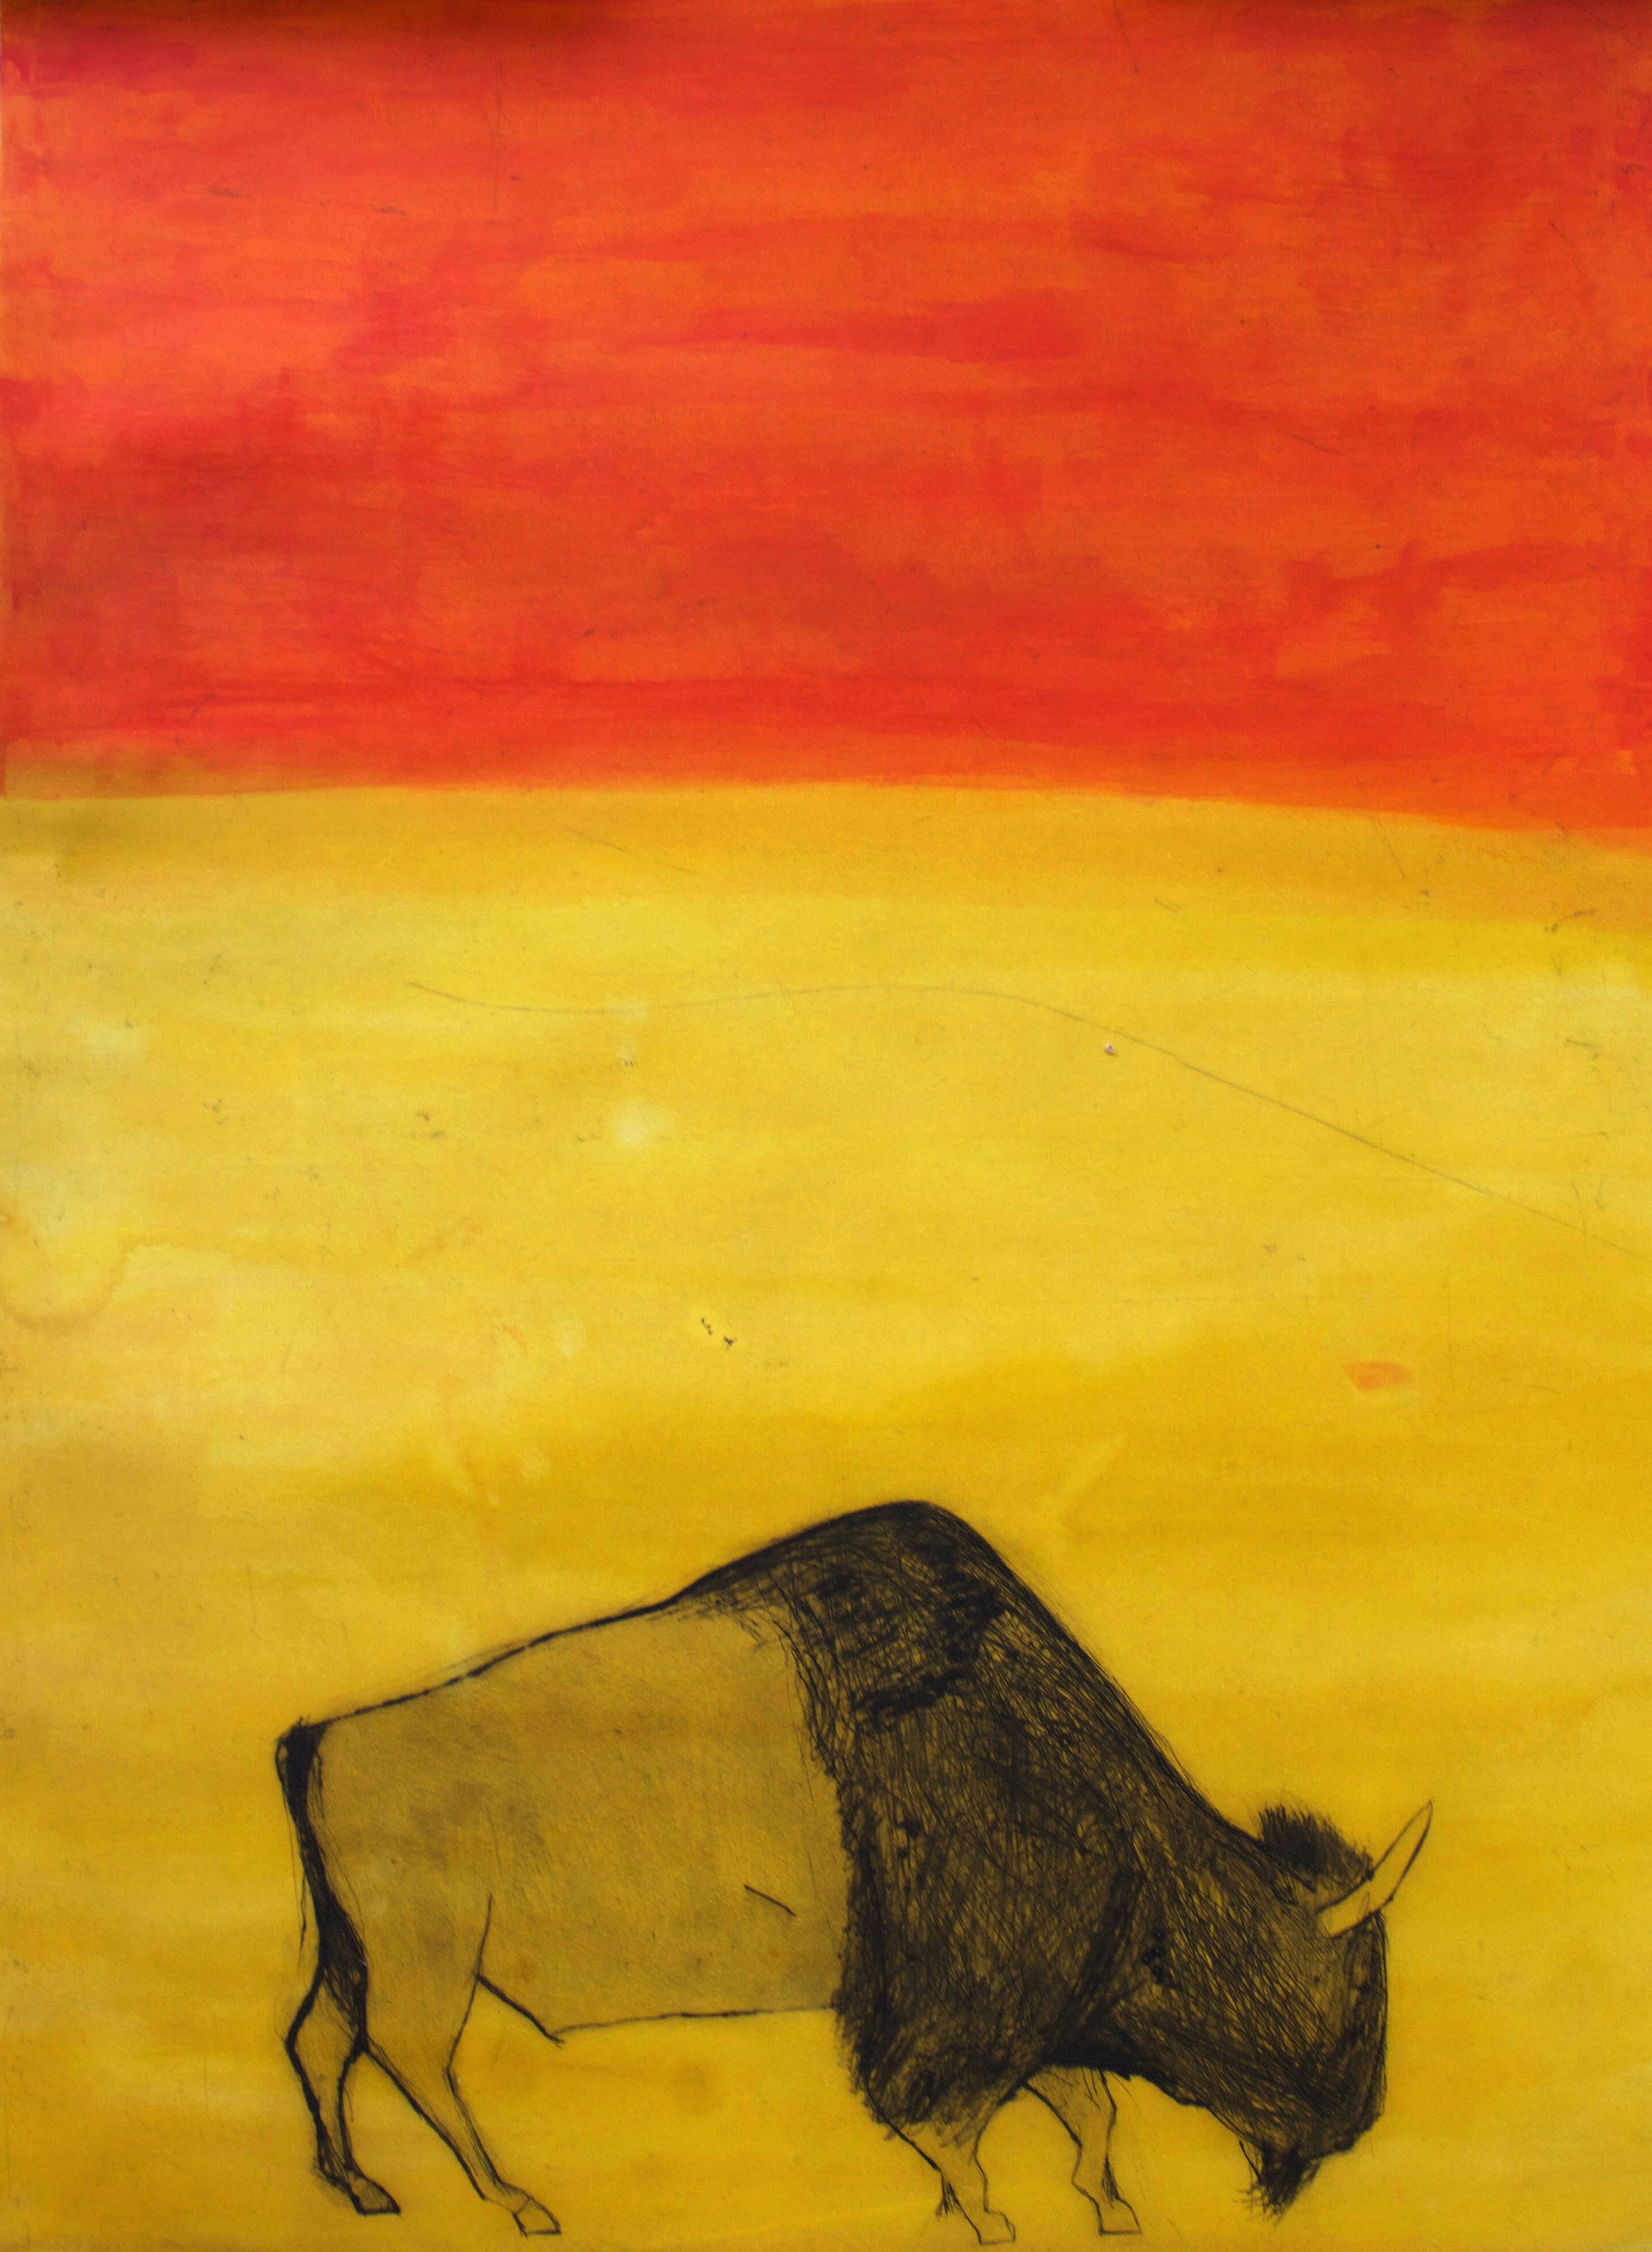 Title: I Feel Like An African Prince Size: 78 x 109 cm Medium: Drypoint, carborundum and chine-colle